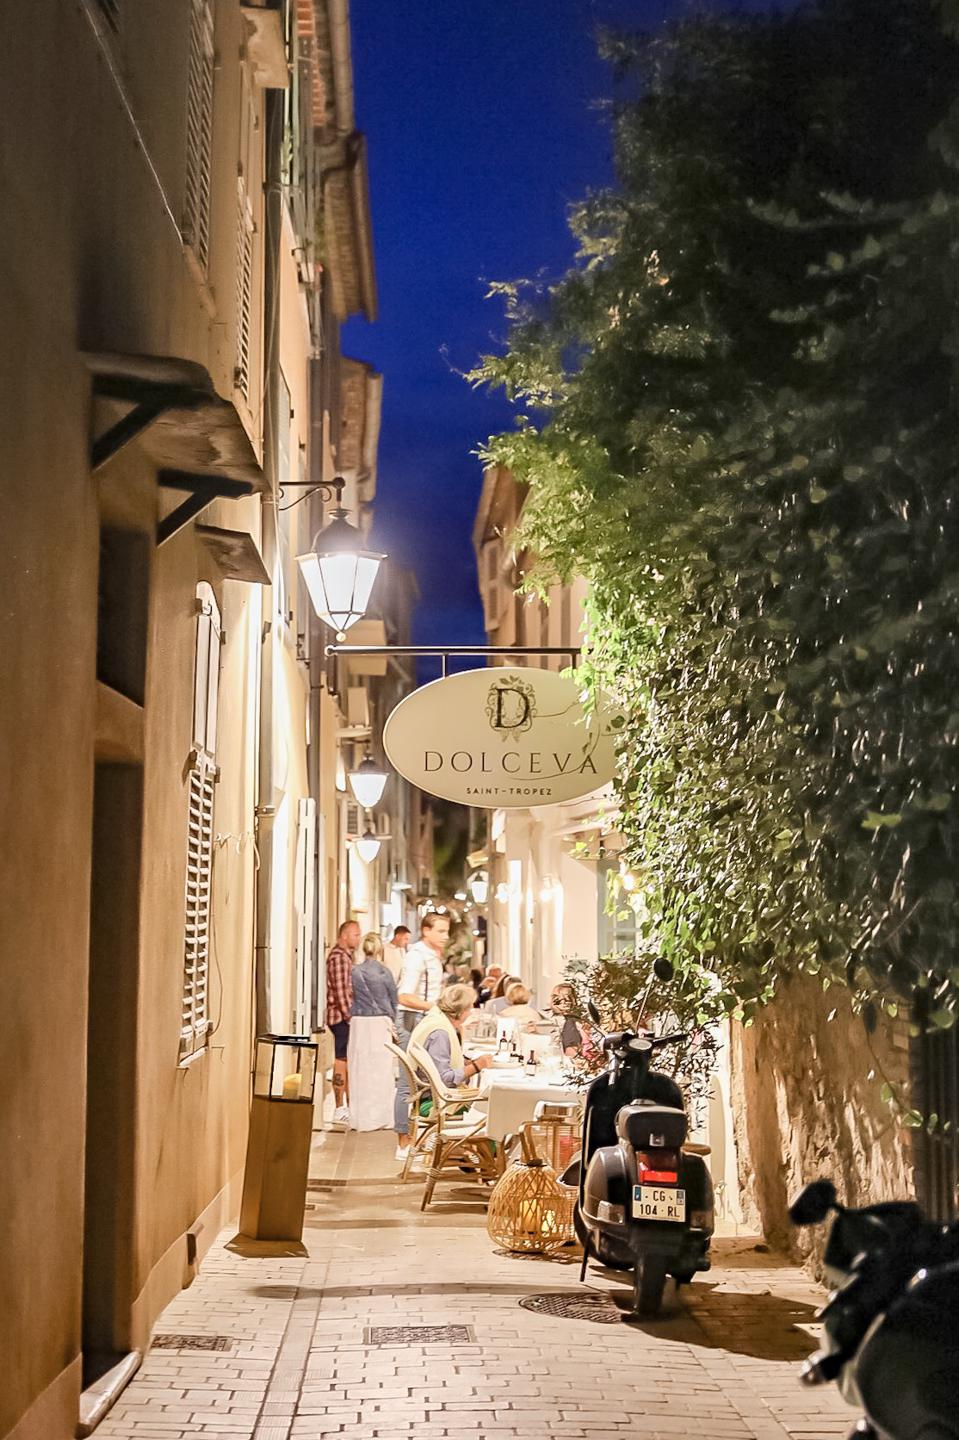 ST. TROPEZ - View of Dolceva